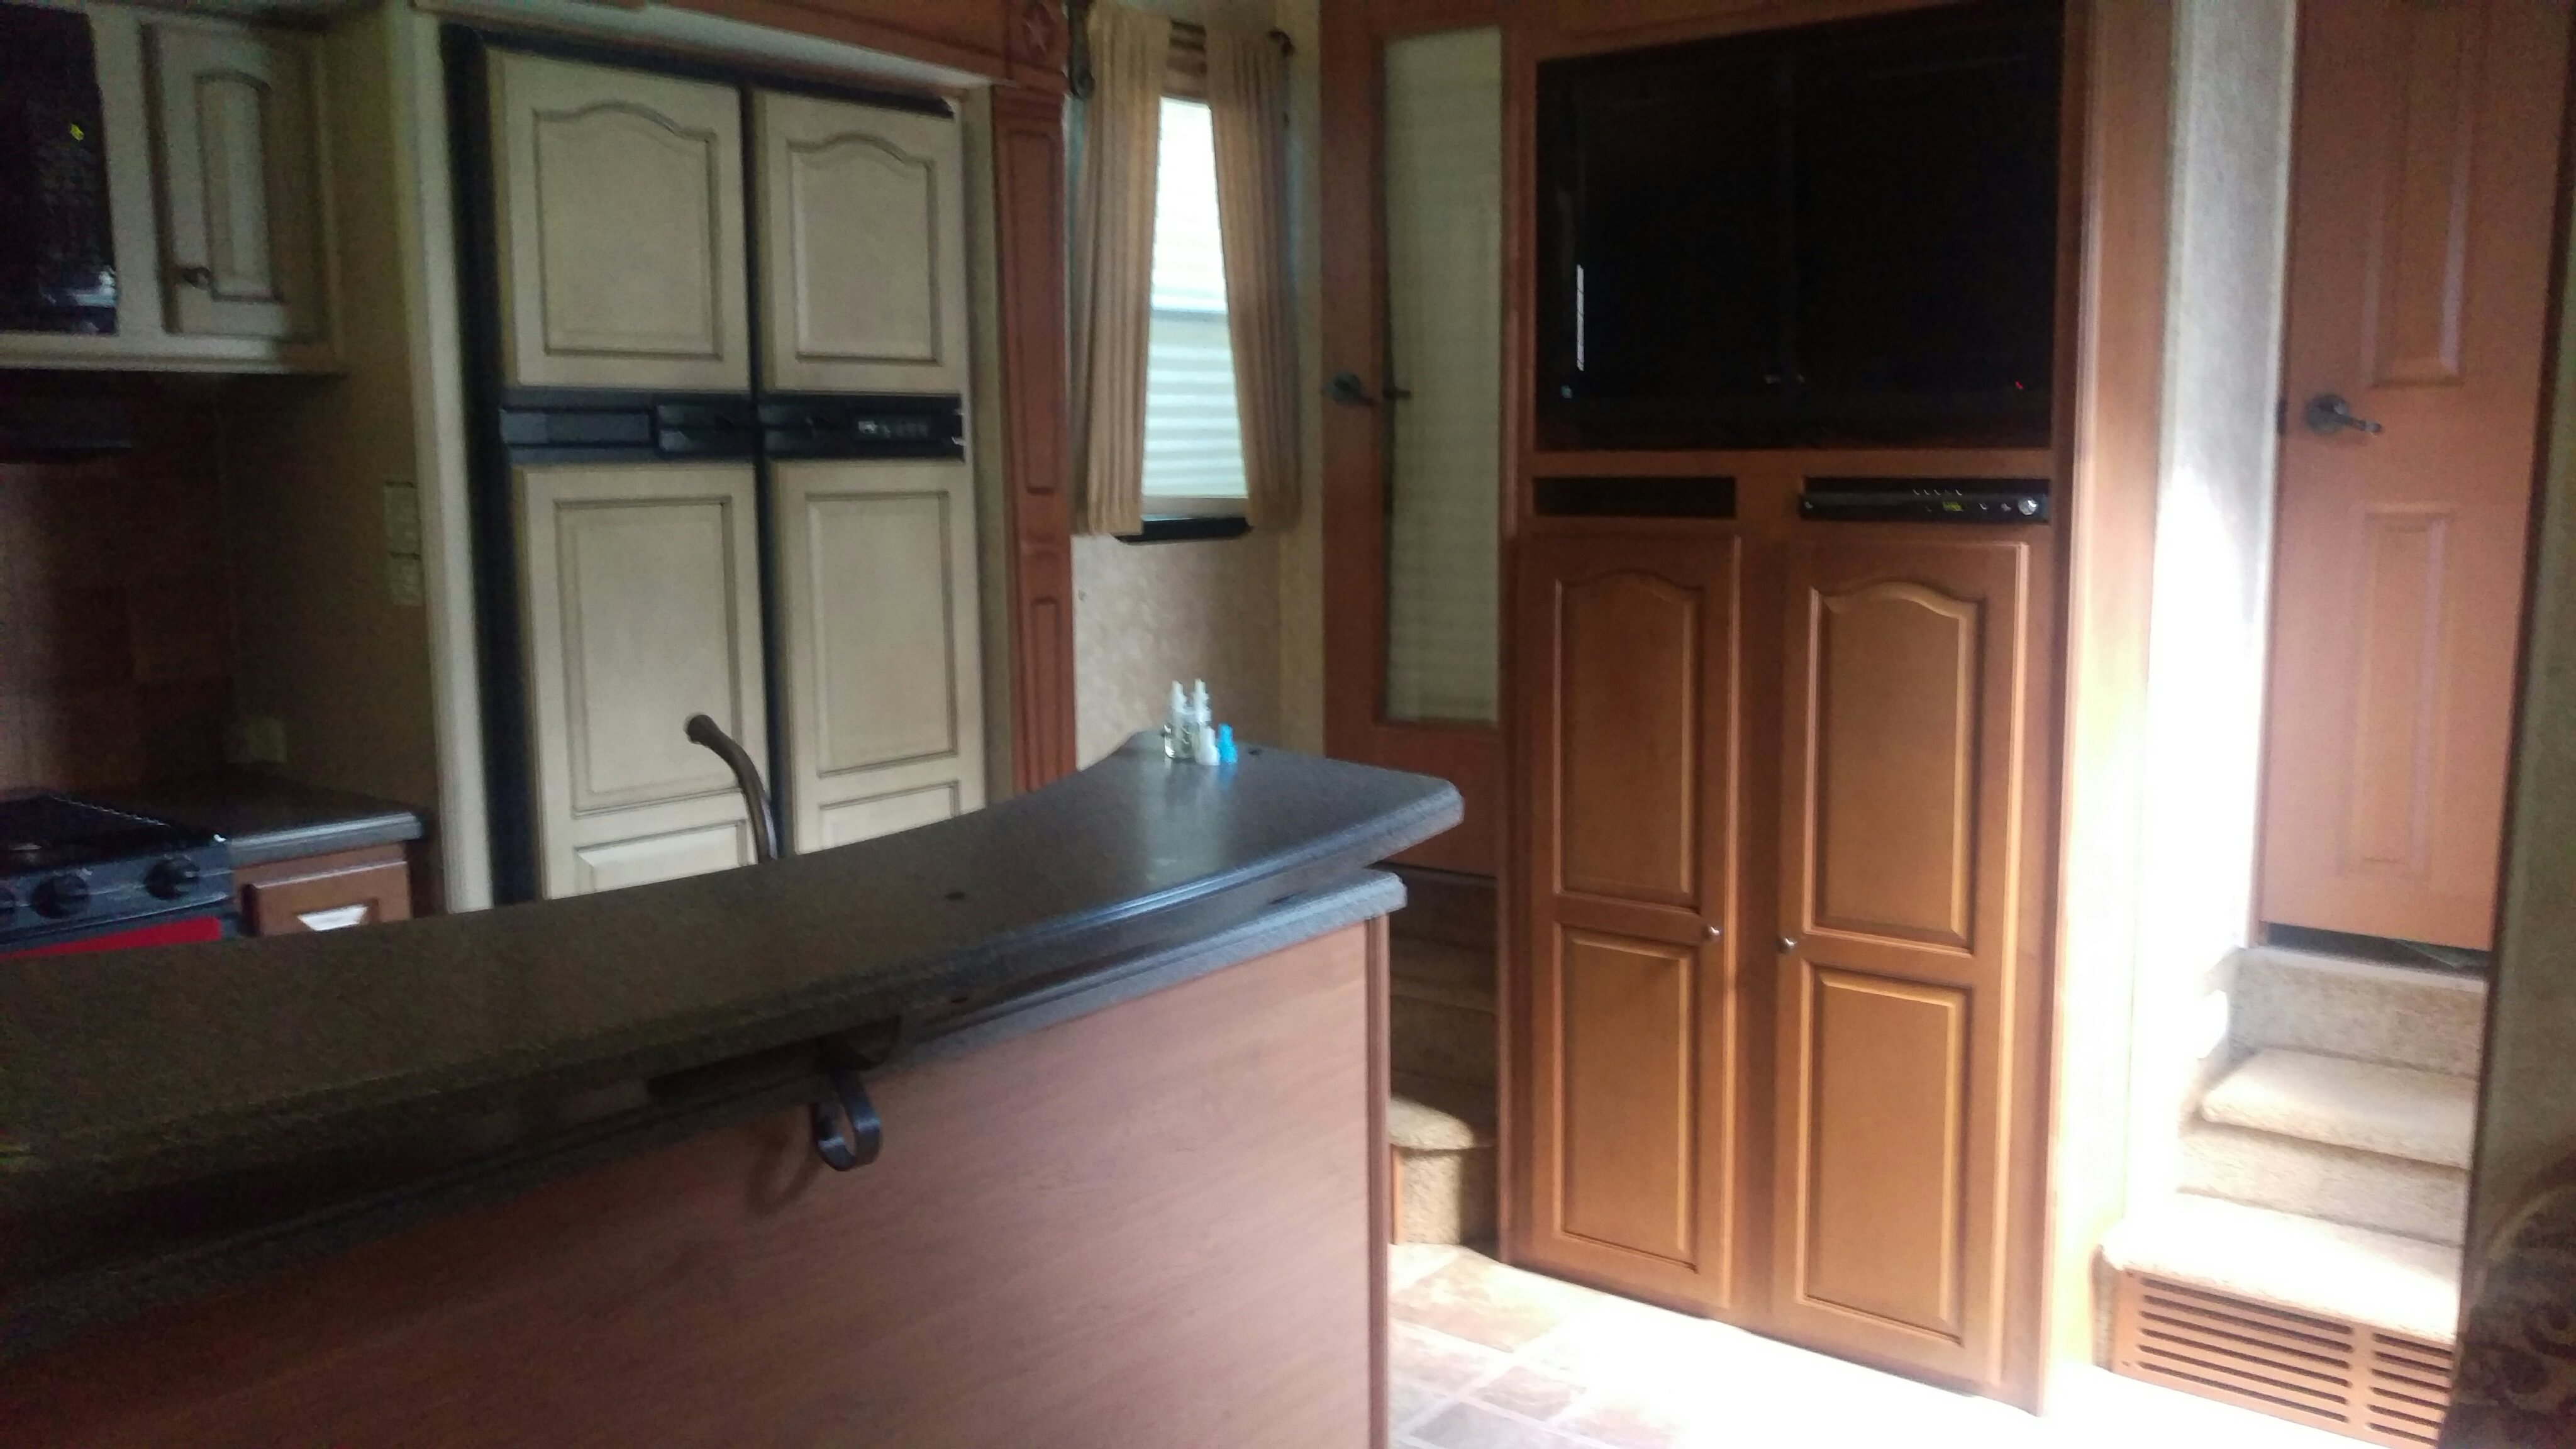 Kitchen with double refrigerator/freezer. Open Range Other 2010